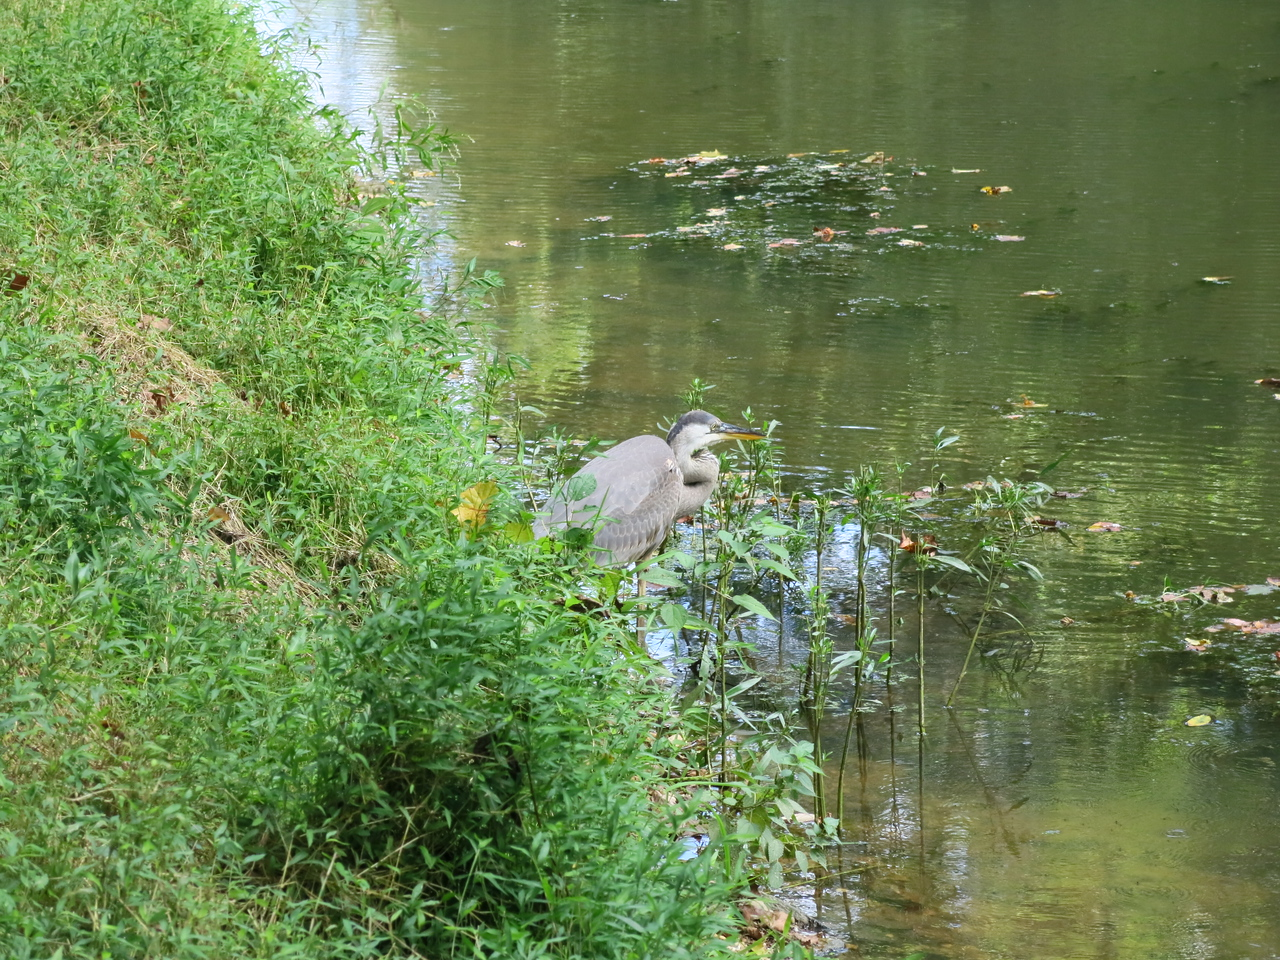 The heron was bothered by bikes and people close by